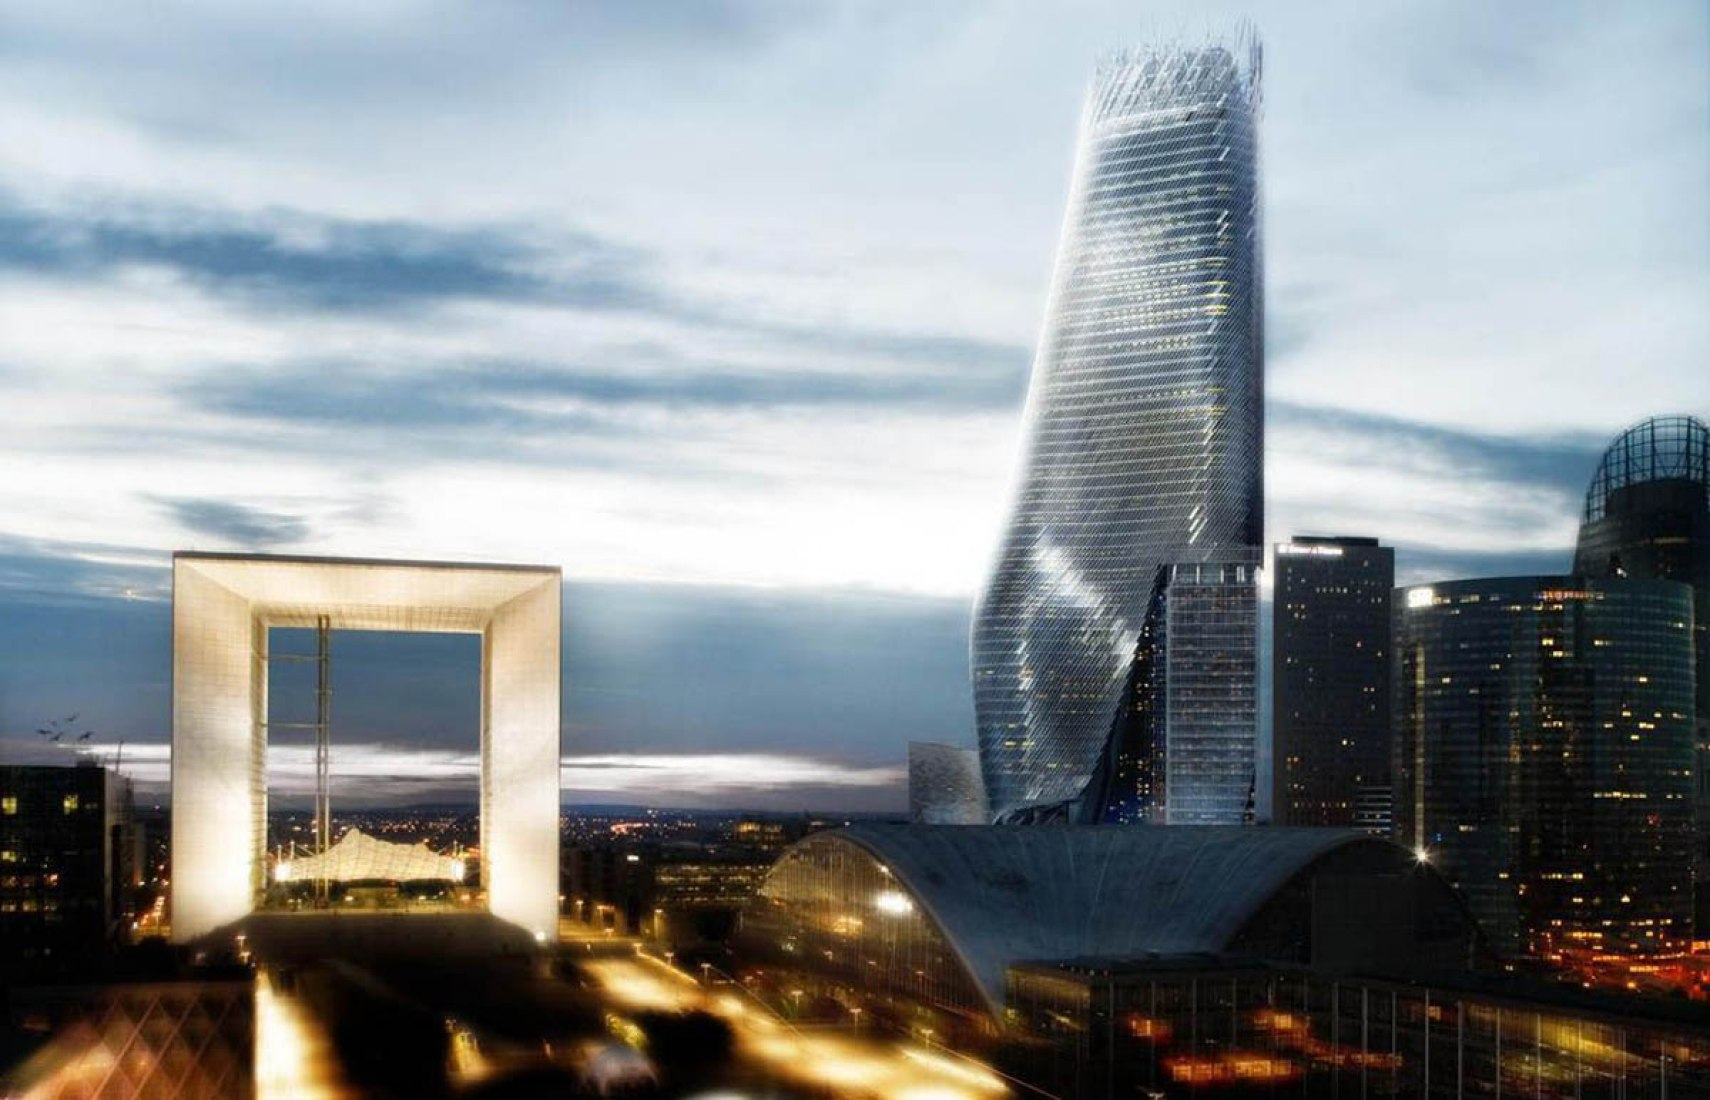 Images of competition-winning tower for the La Défense business district in Paris by Tom Mayne. 2010